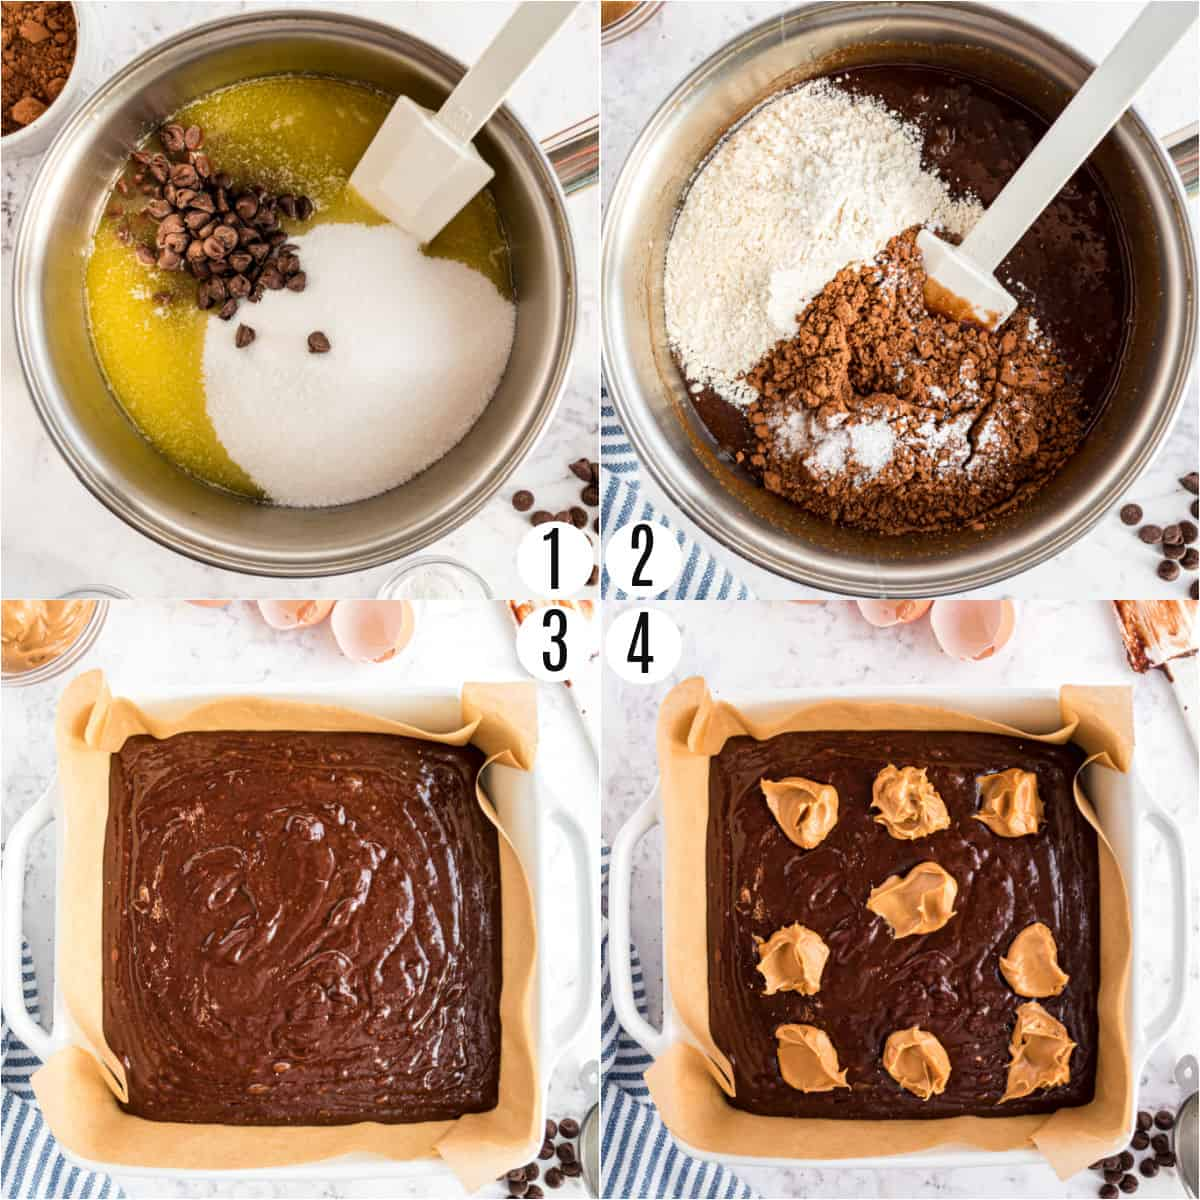 Step by step photos showing how to make peanut butter brownies.